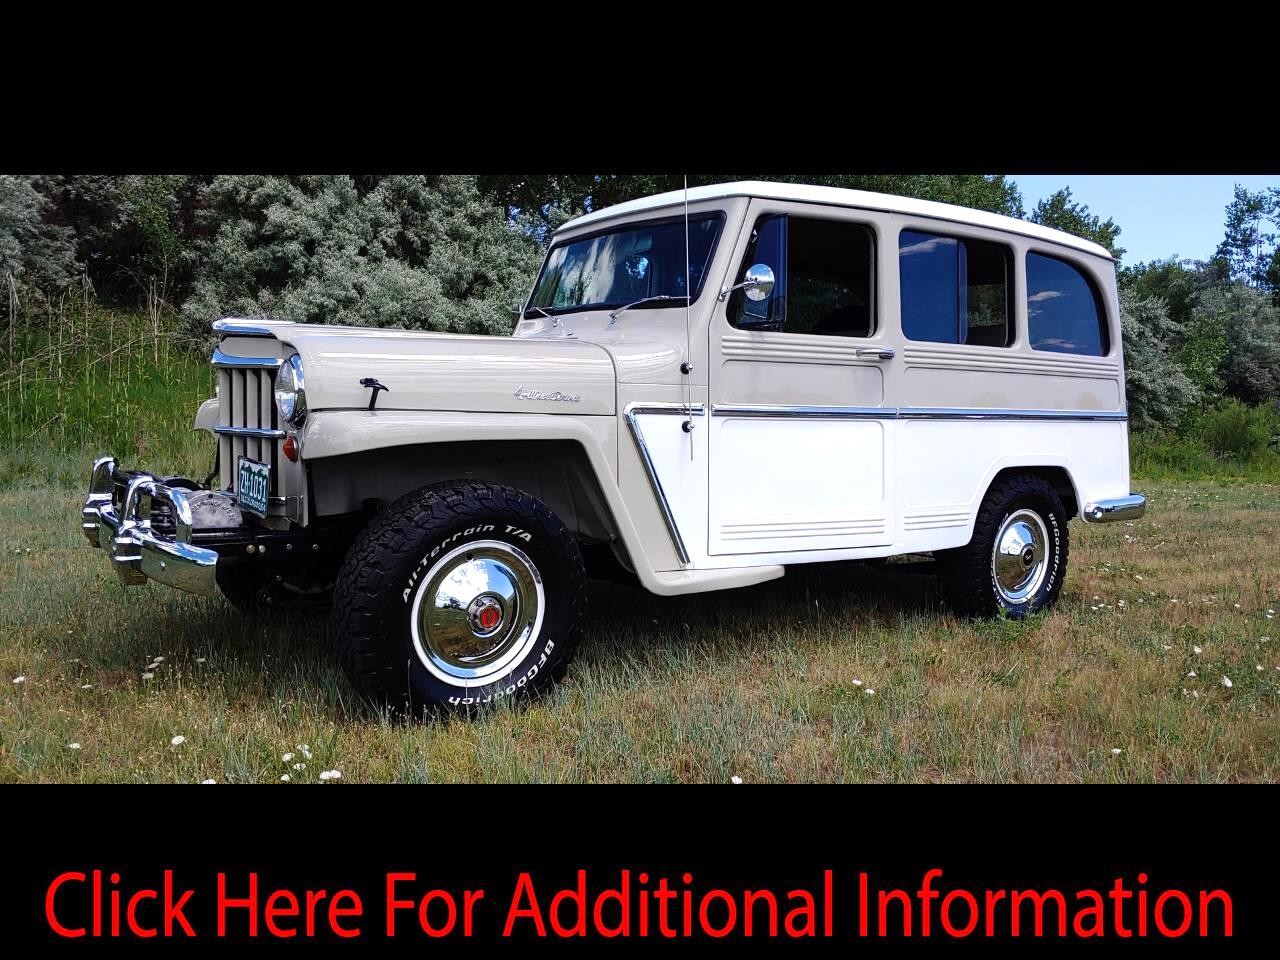 1964 Willys Jeep Wagon